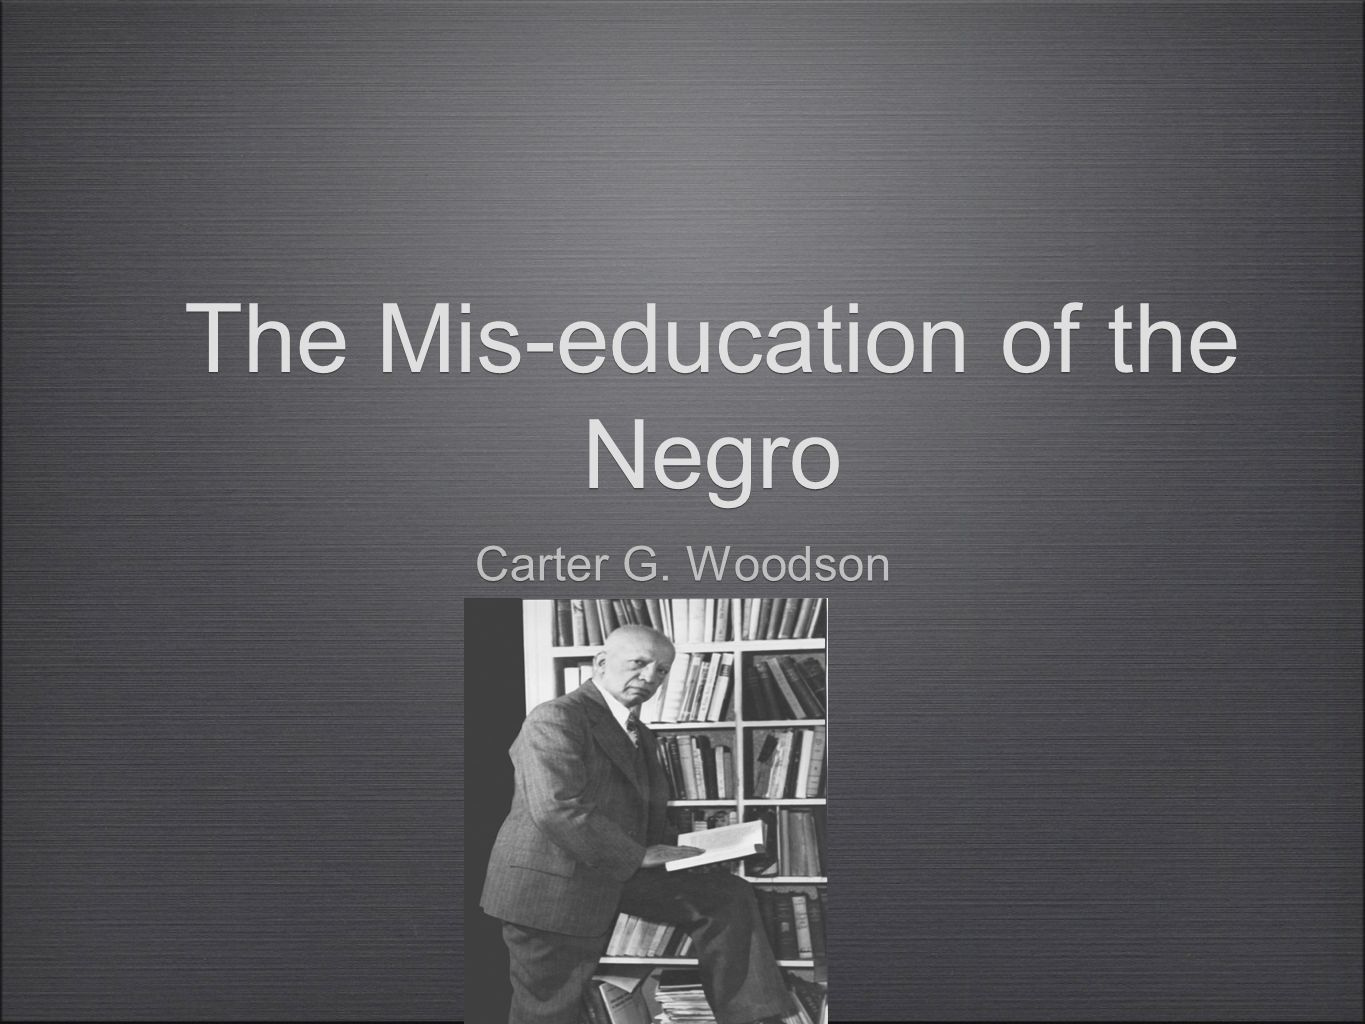 The mis-education of the negro: carter godwin woodson.